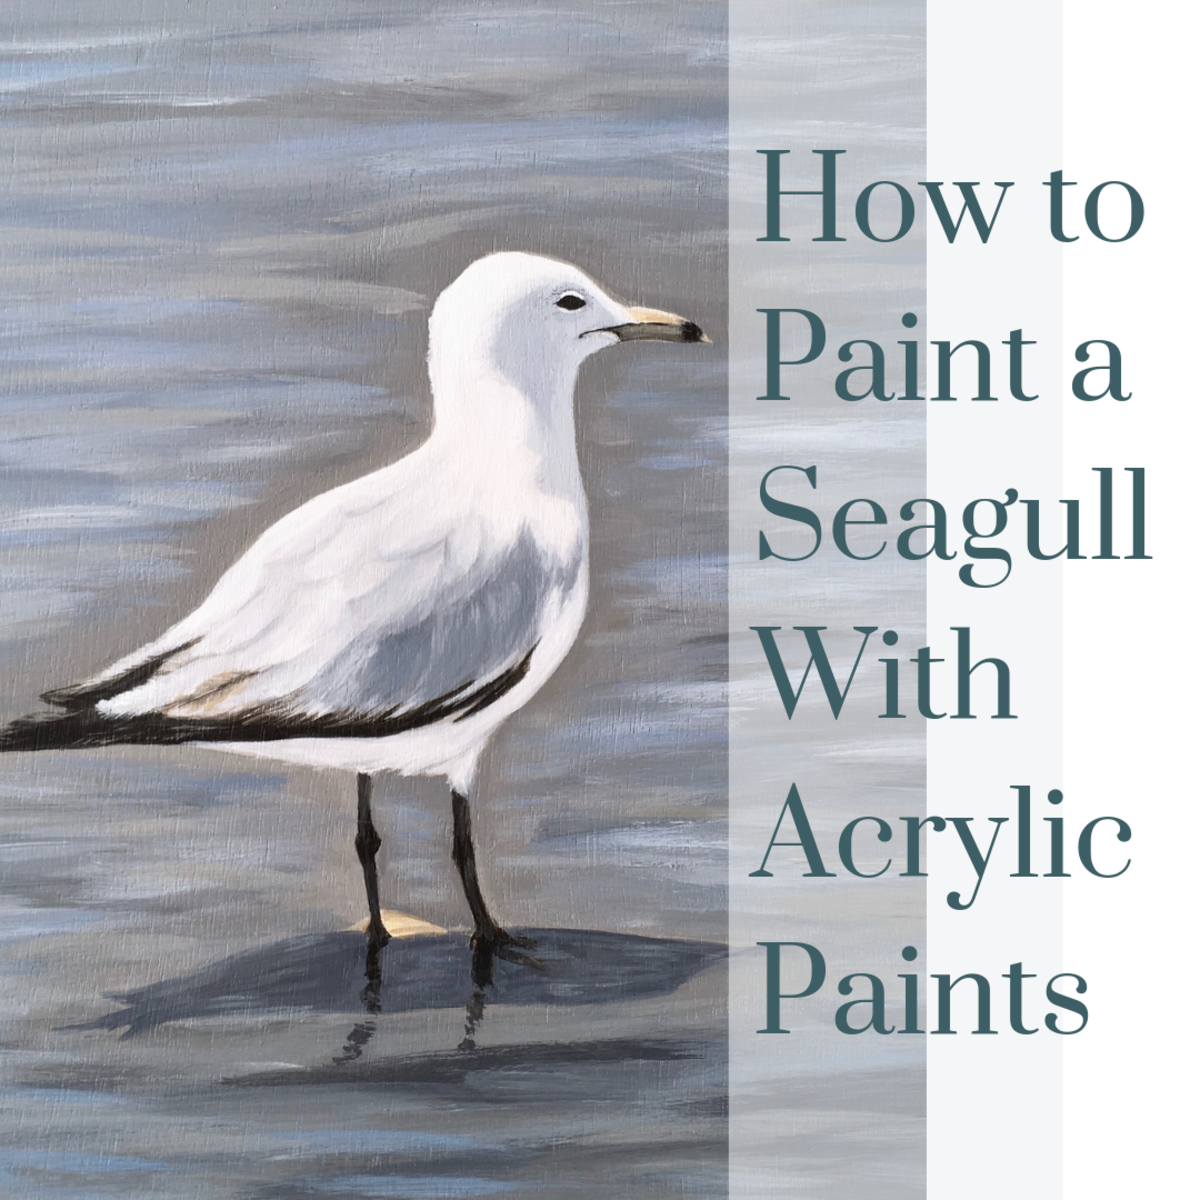 How to Paint a Seagull With Acrylic Paints